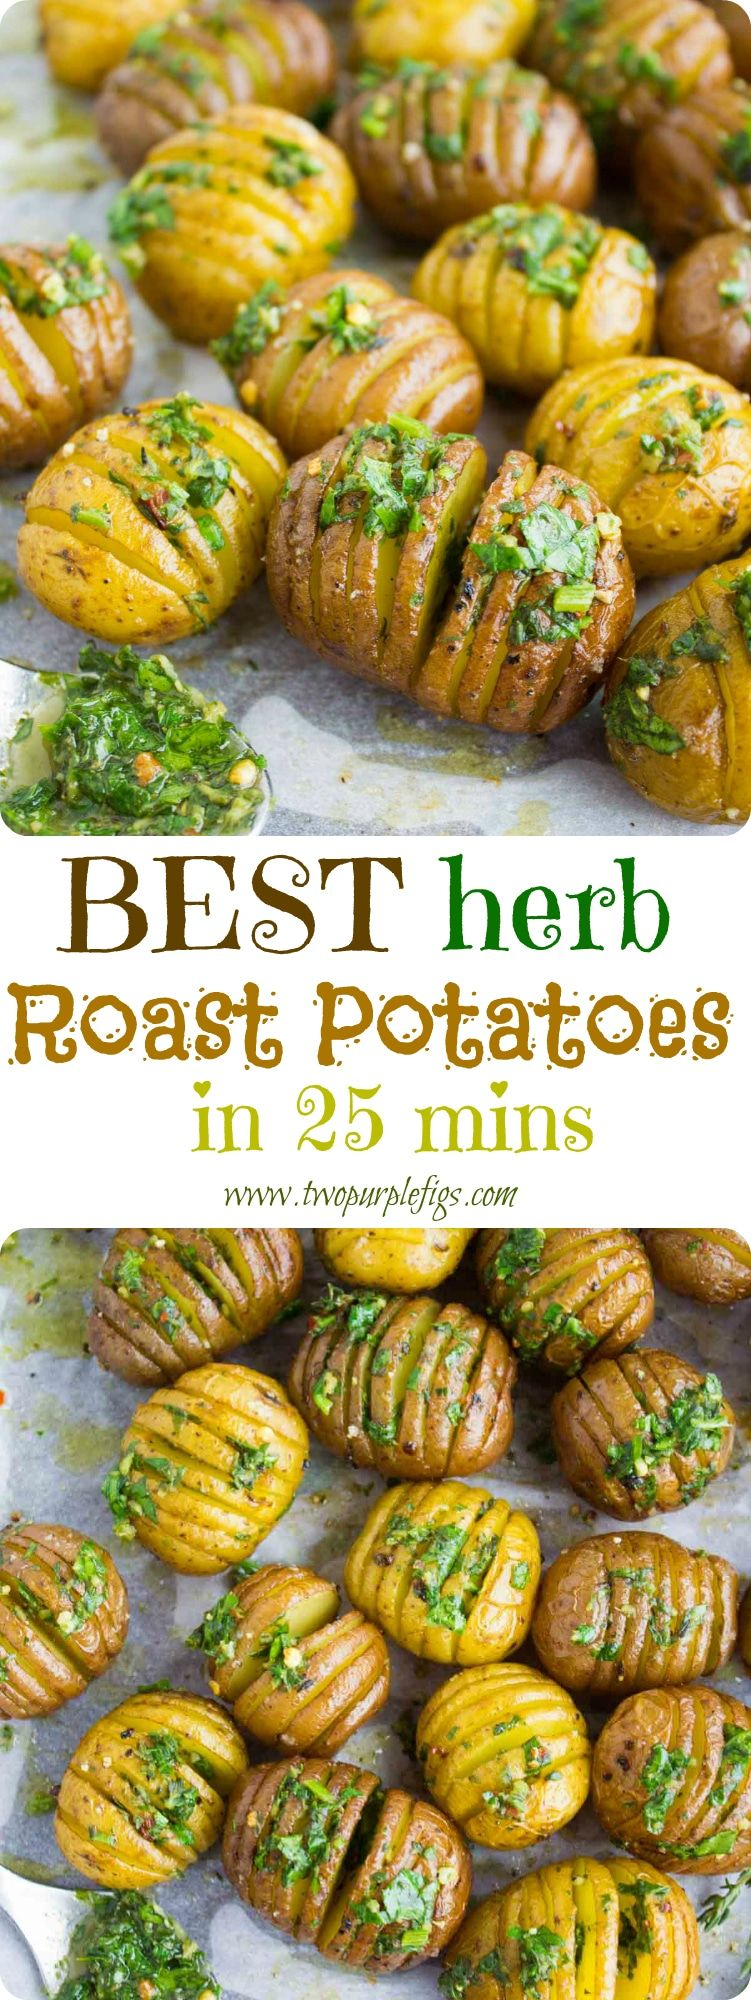 Best Herb Roast Potatoes | This is simply the best recipe for oven roasted potatoes. Picture herb butter smothered Hasselback-style potatoes roasted till crispy on the outside and tender on the inside. Easy to make and simply the perfect side dish for steak or roasts.| www.twopurplefigs.com | #crispy, #oven, #potatoes, #russet, #herb, #foracrowd, #seasoned, #baked, #vegetarian #russetpotatorecipes